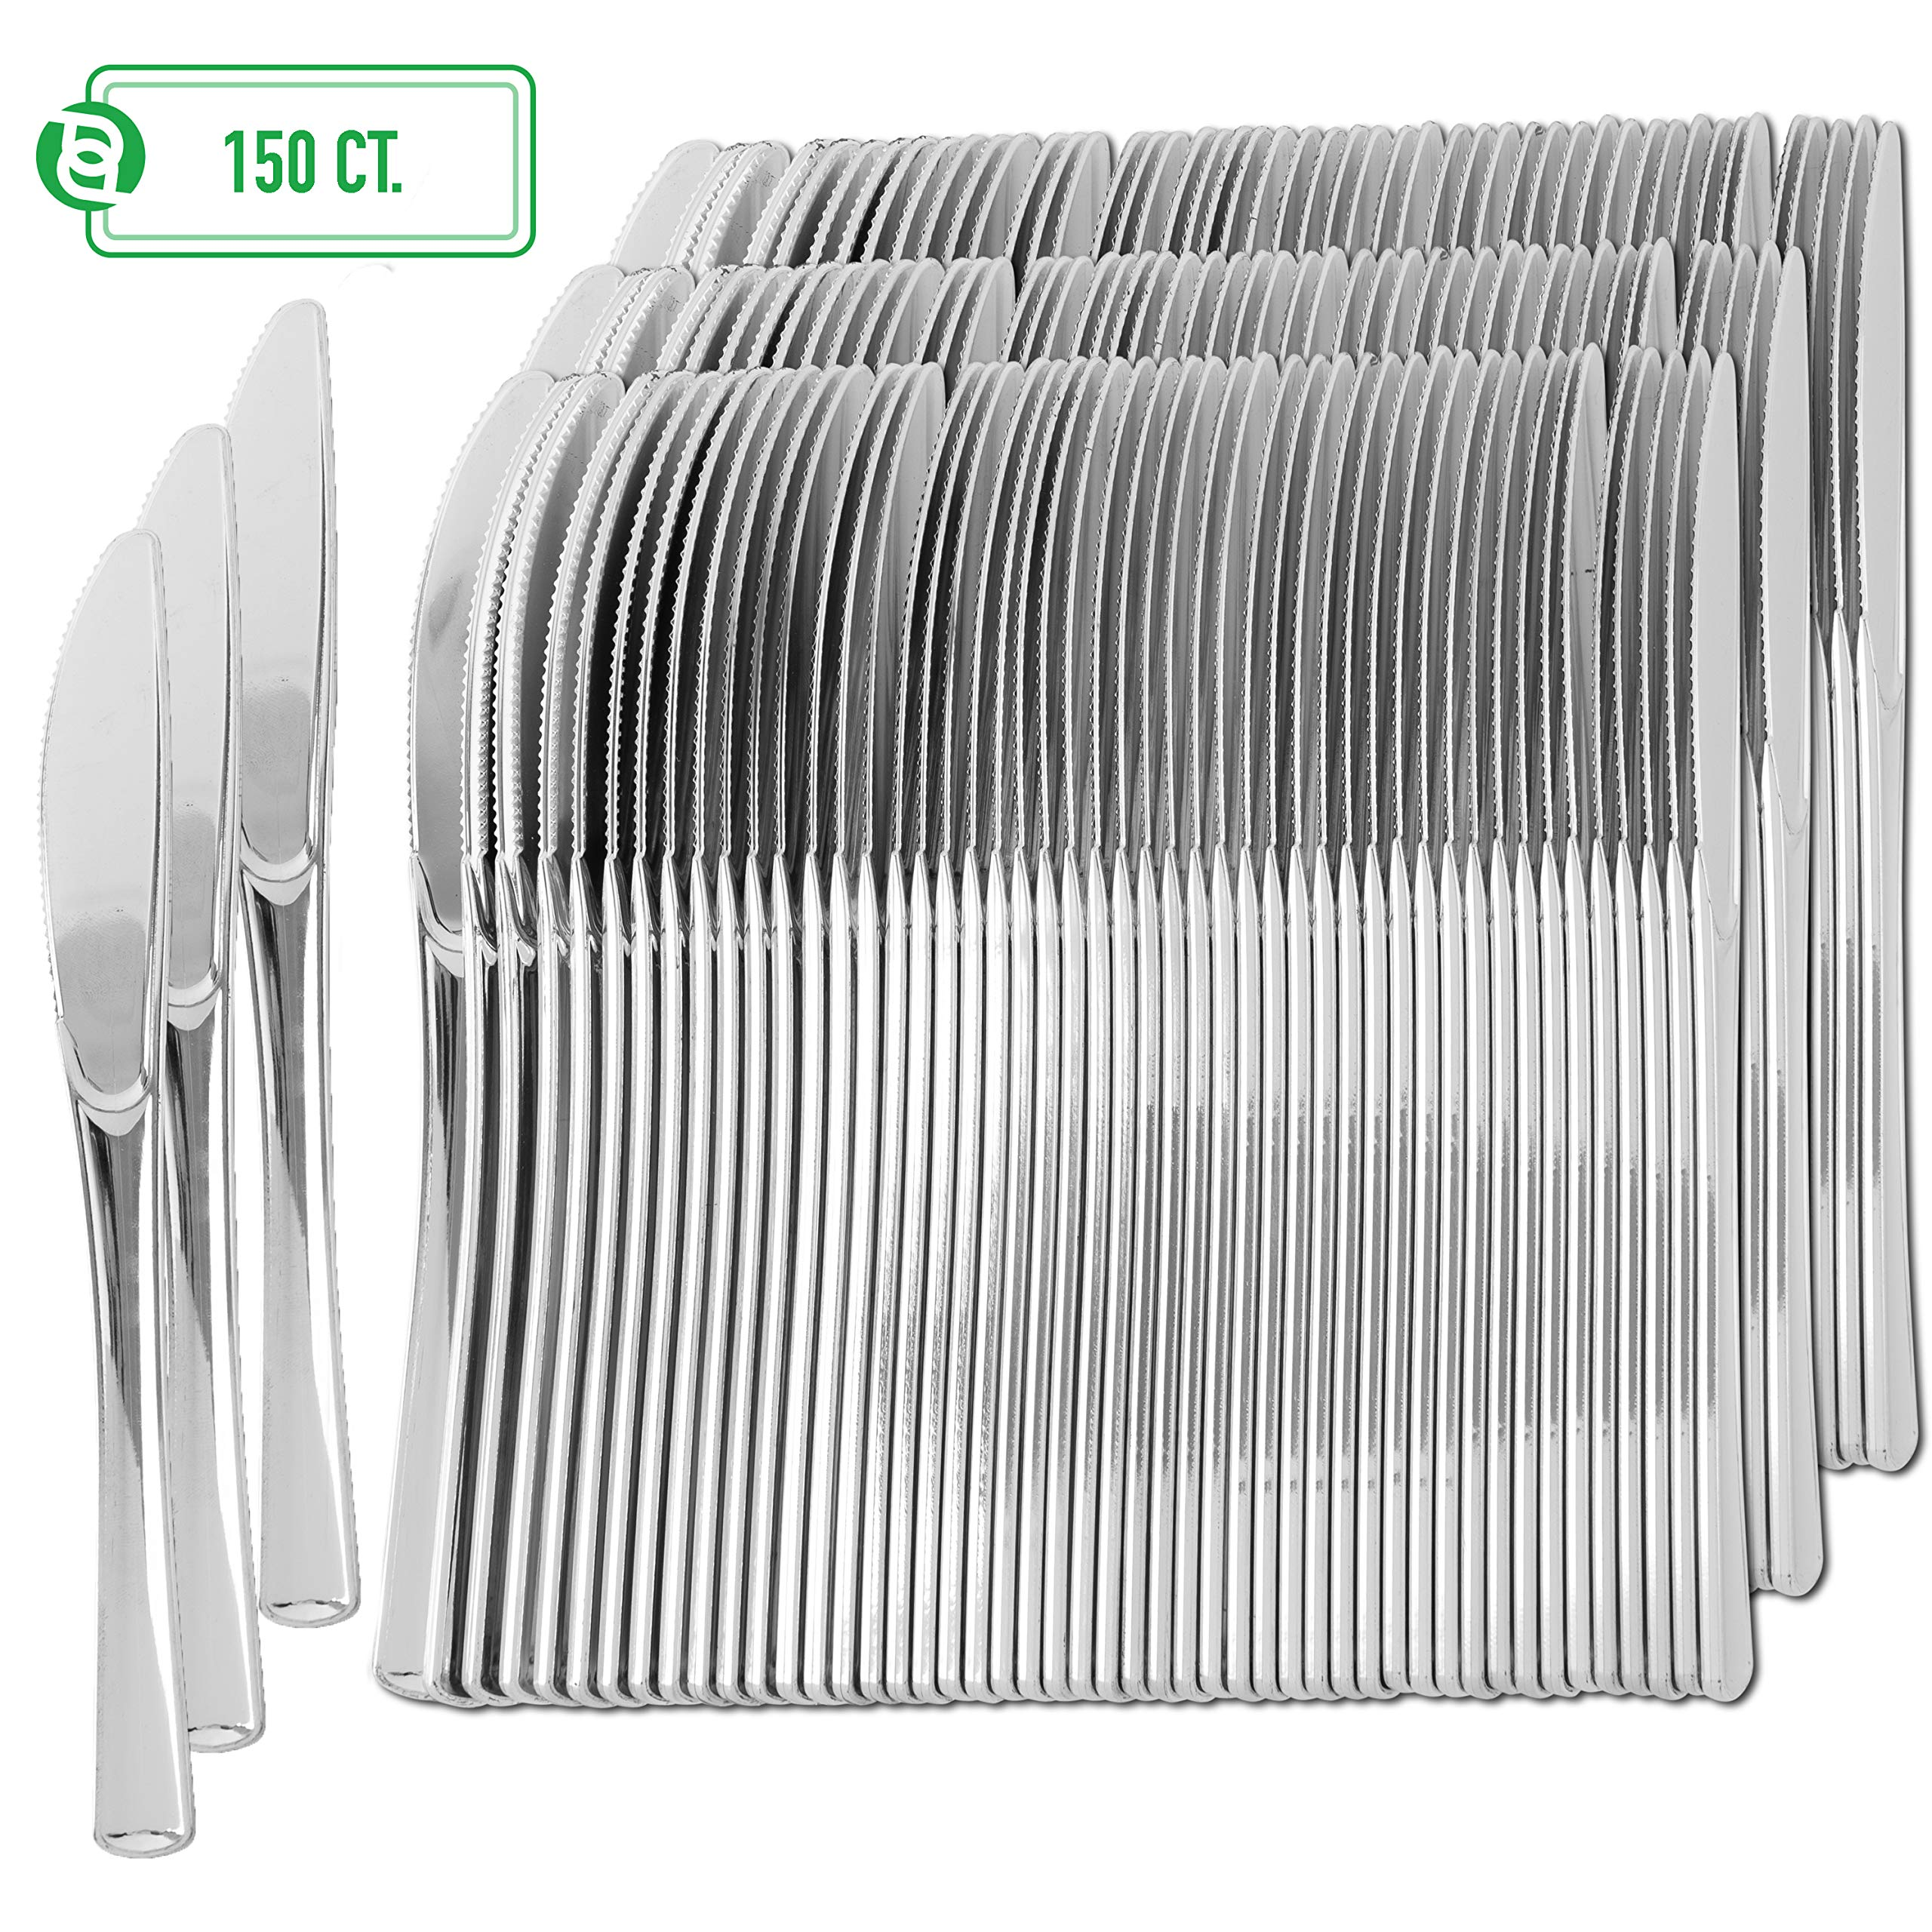 Plastic Silverware | Heavy Duty & Solid Cutlery Disposable Utensils Set | Perfect for Weddings, Buffets, Luncheon, Birthdays, More | Pack of 150 Knives by Party Bargains